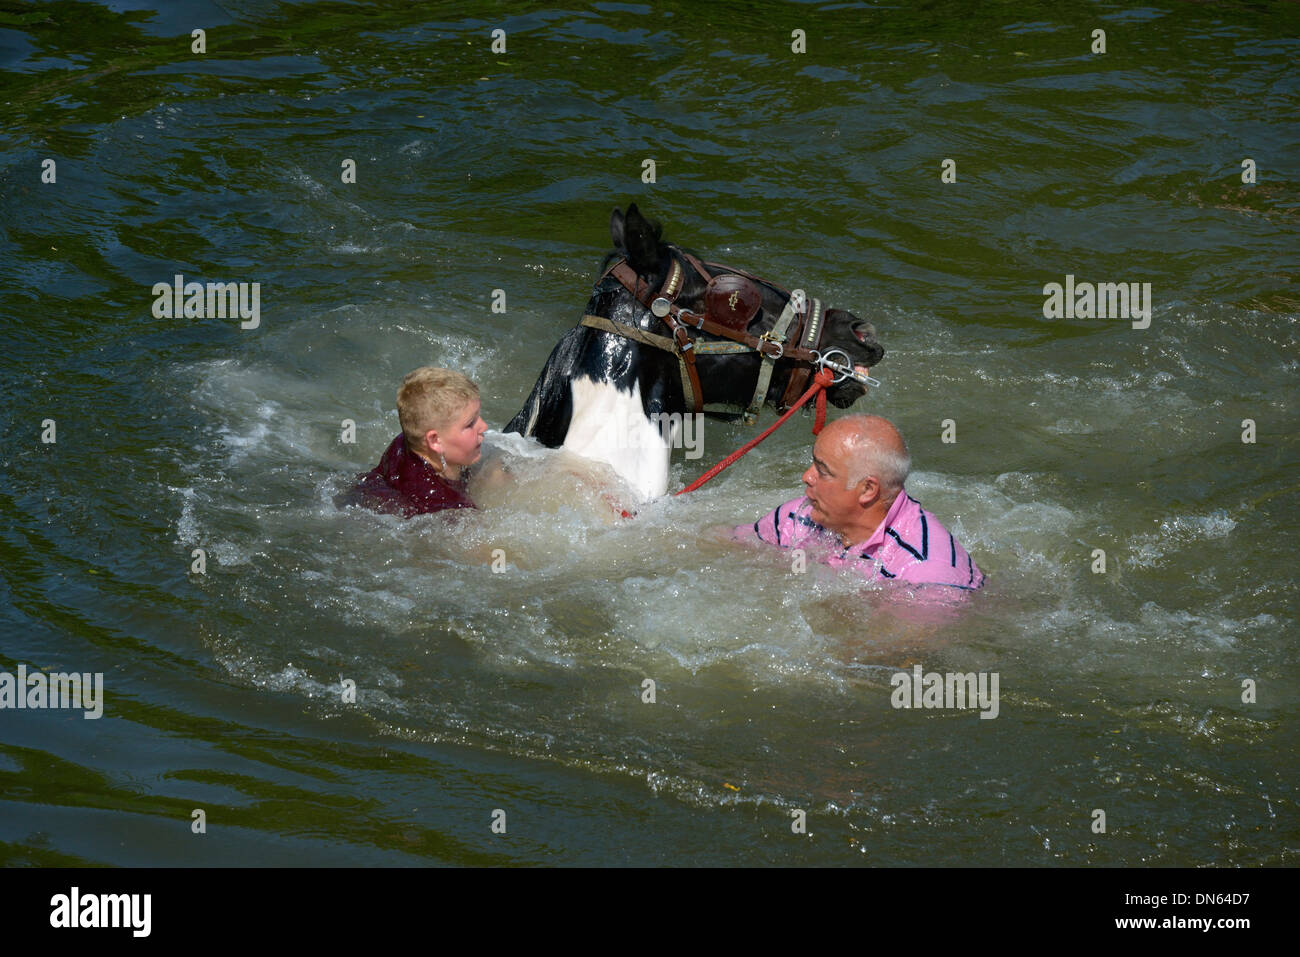 Gypsy travellers with horse in River Eden. Appleby Horse Fair, Appleby-in-Westmorland, Cumbria, England, United Kingdom, Europe. - Stock Image